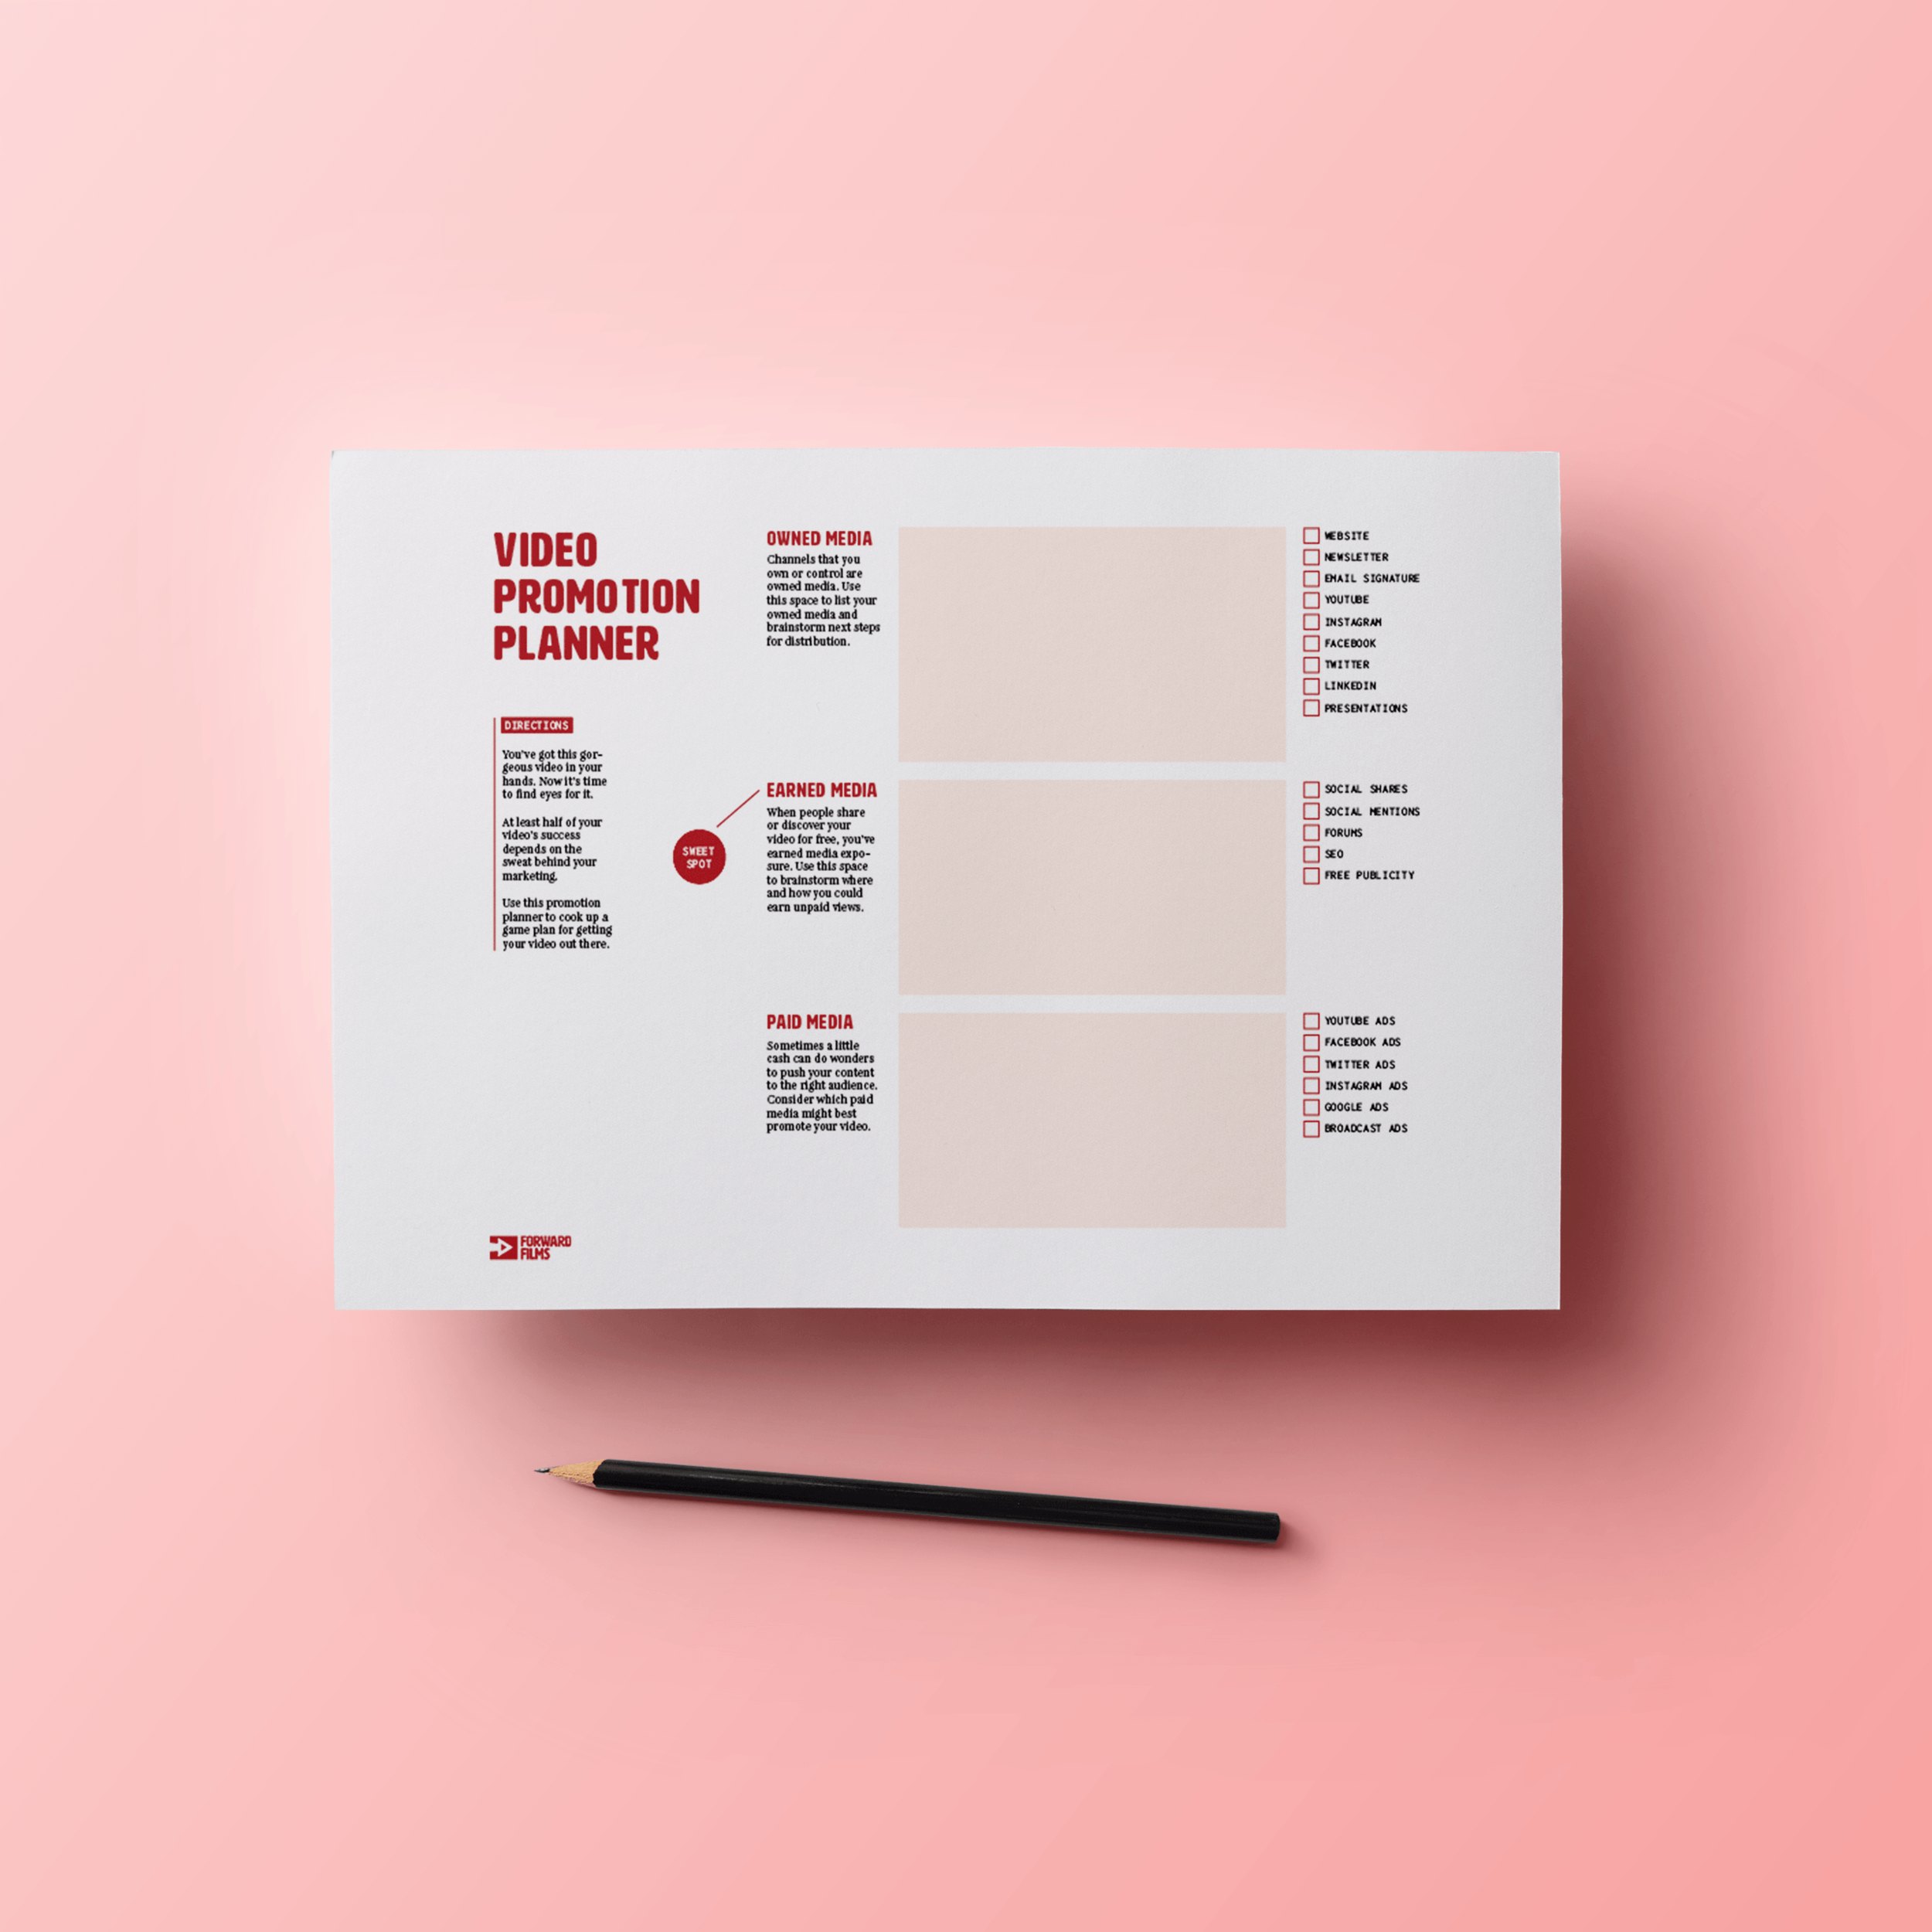 Video promotion planner mockup coral.png